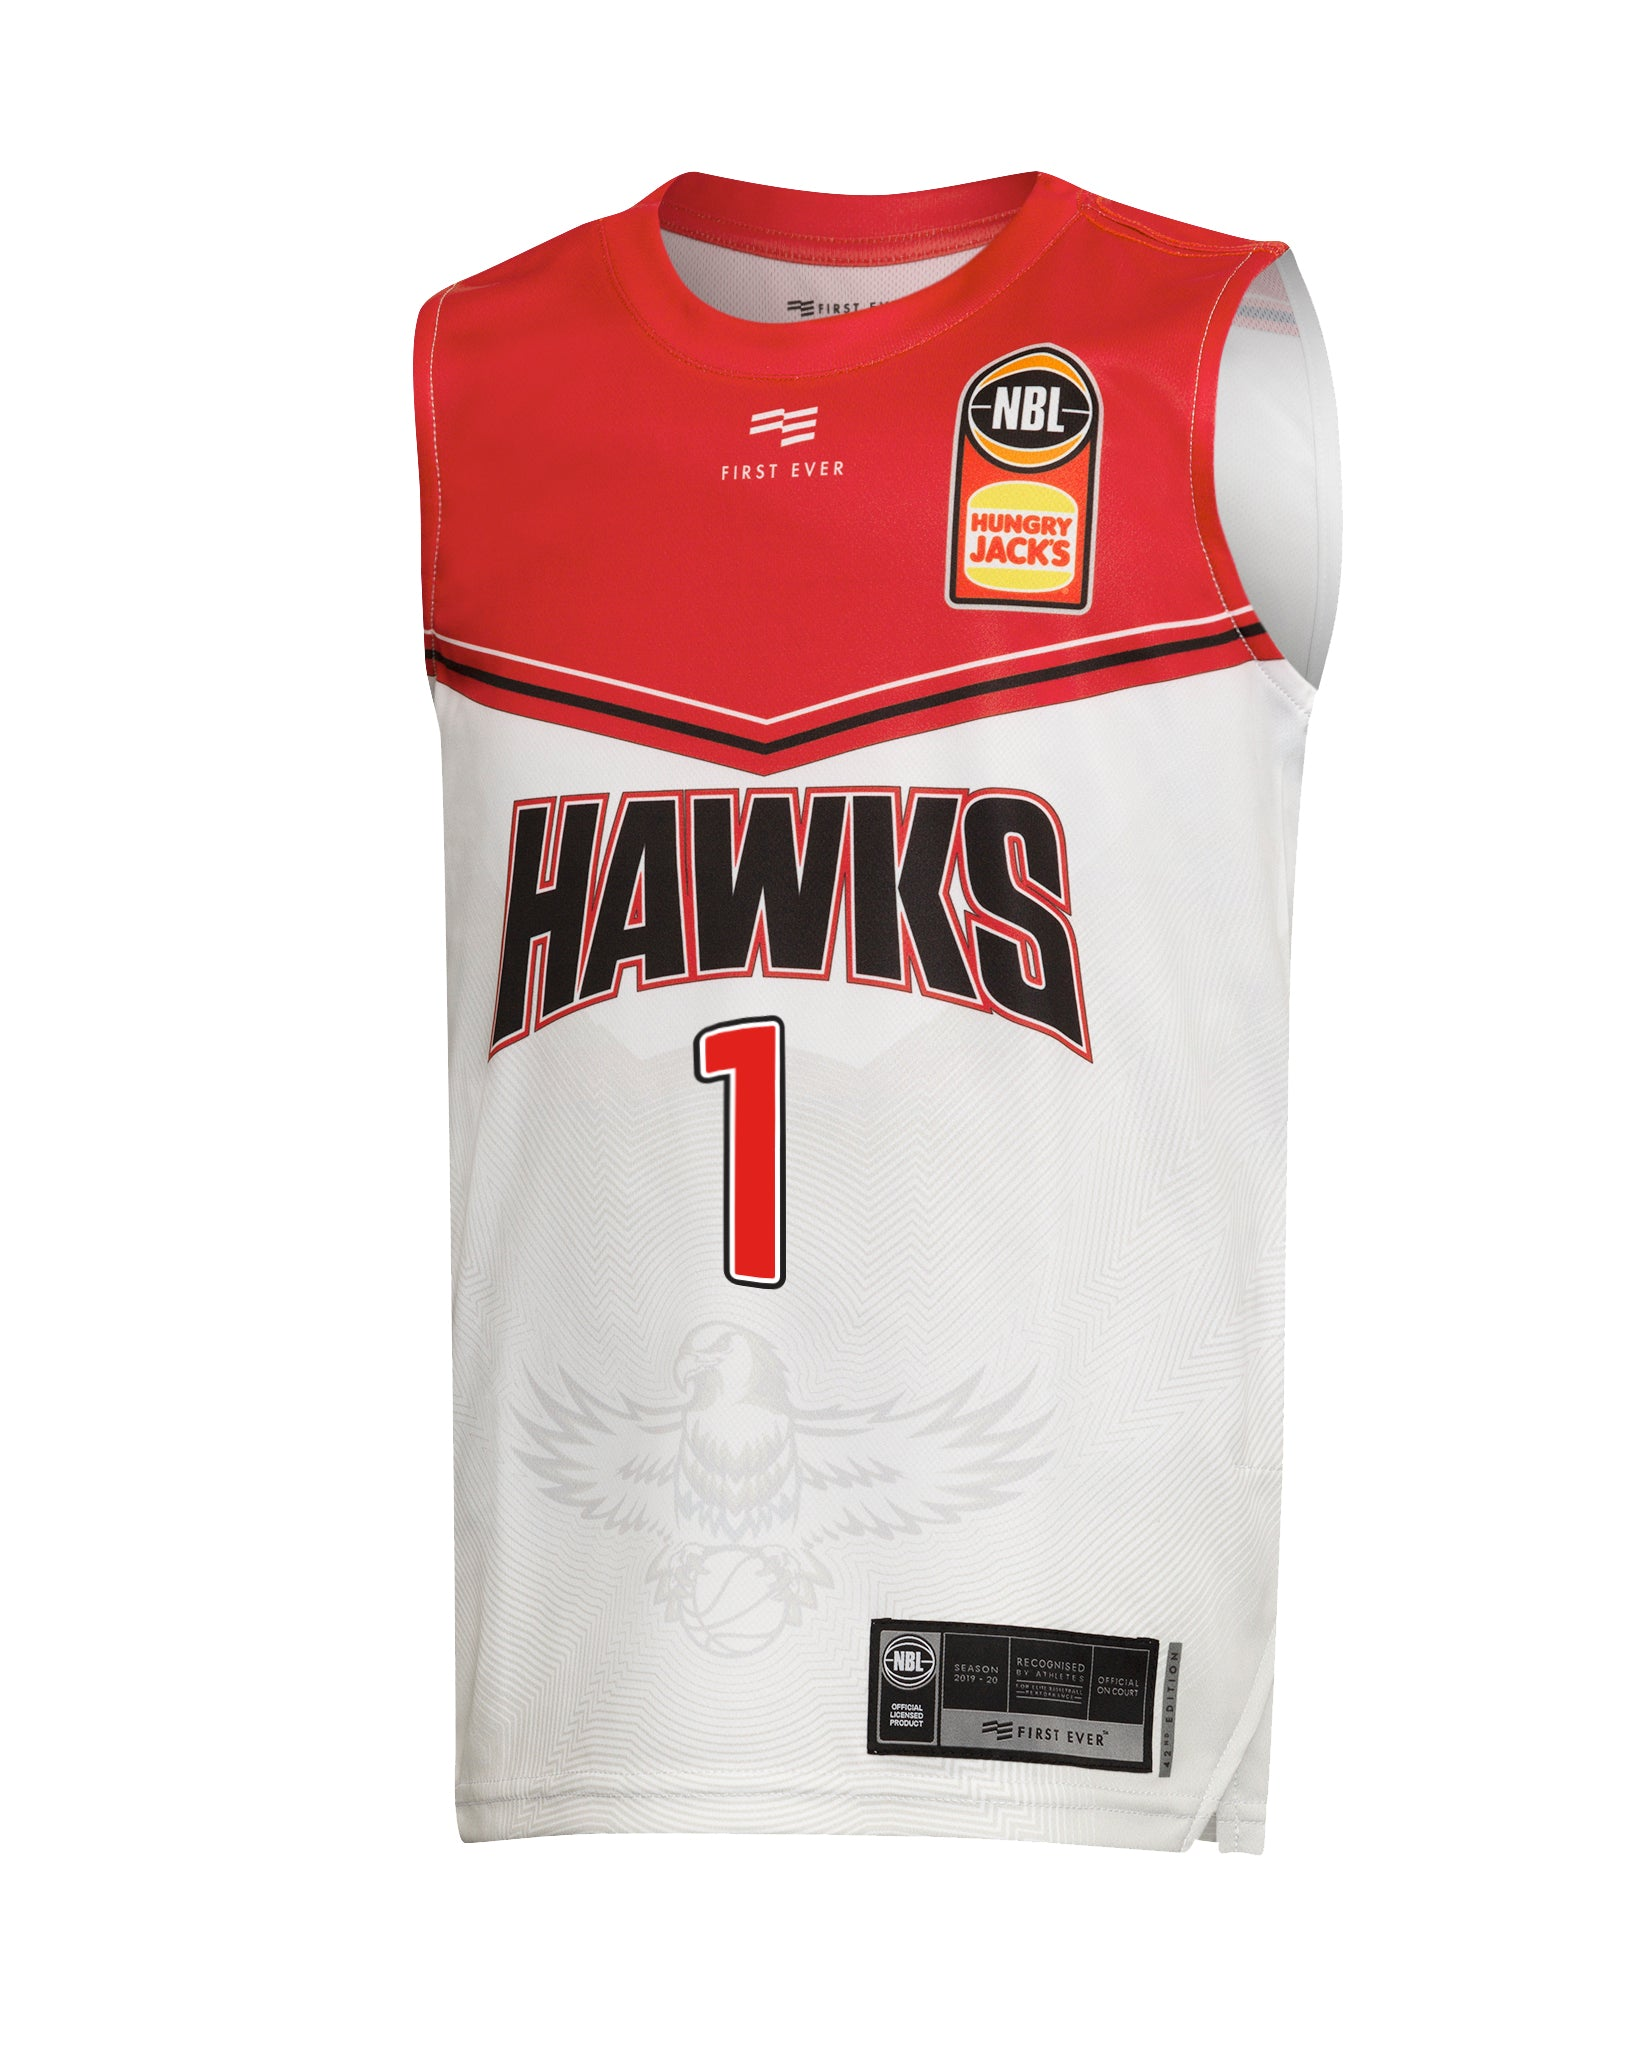 Illawarra Hawks 19/20 Youth Authentic Away Jersey - LaMelo Ball